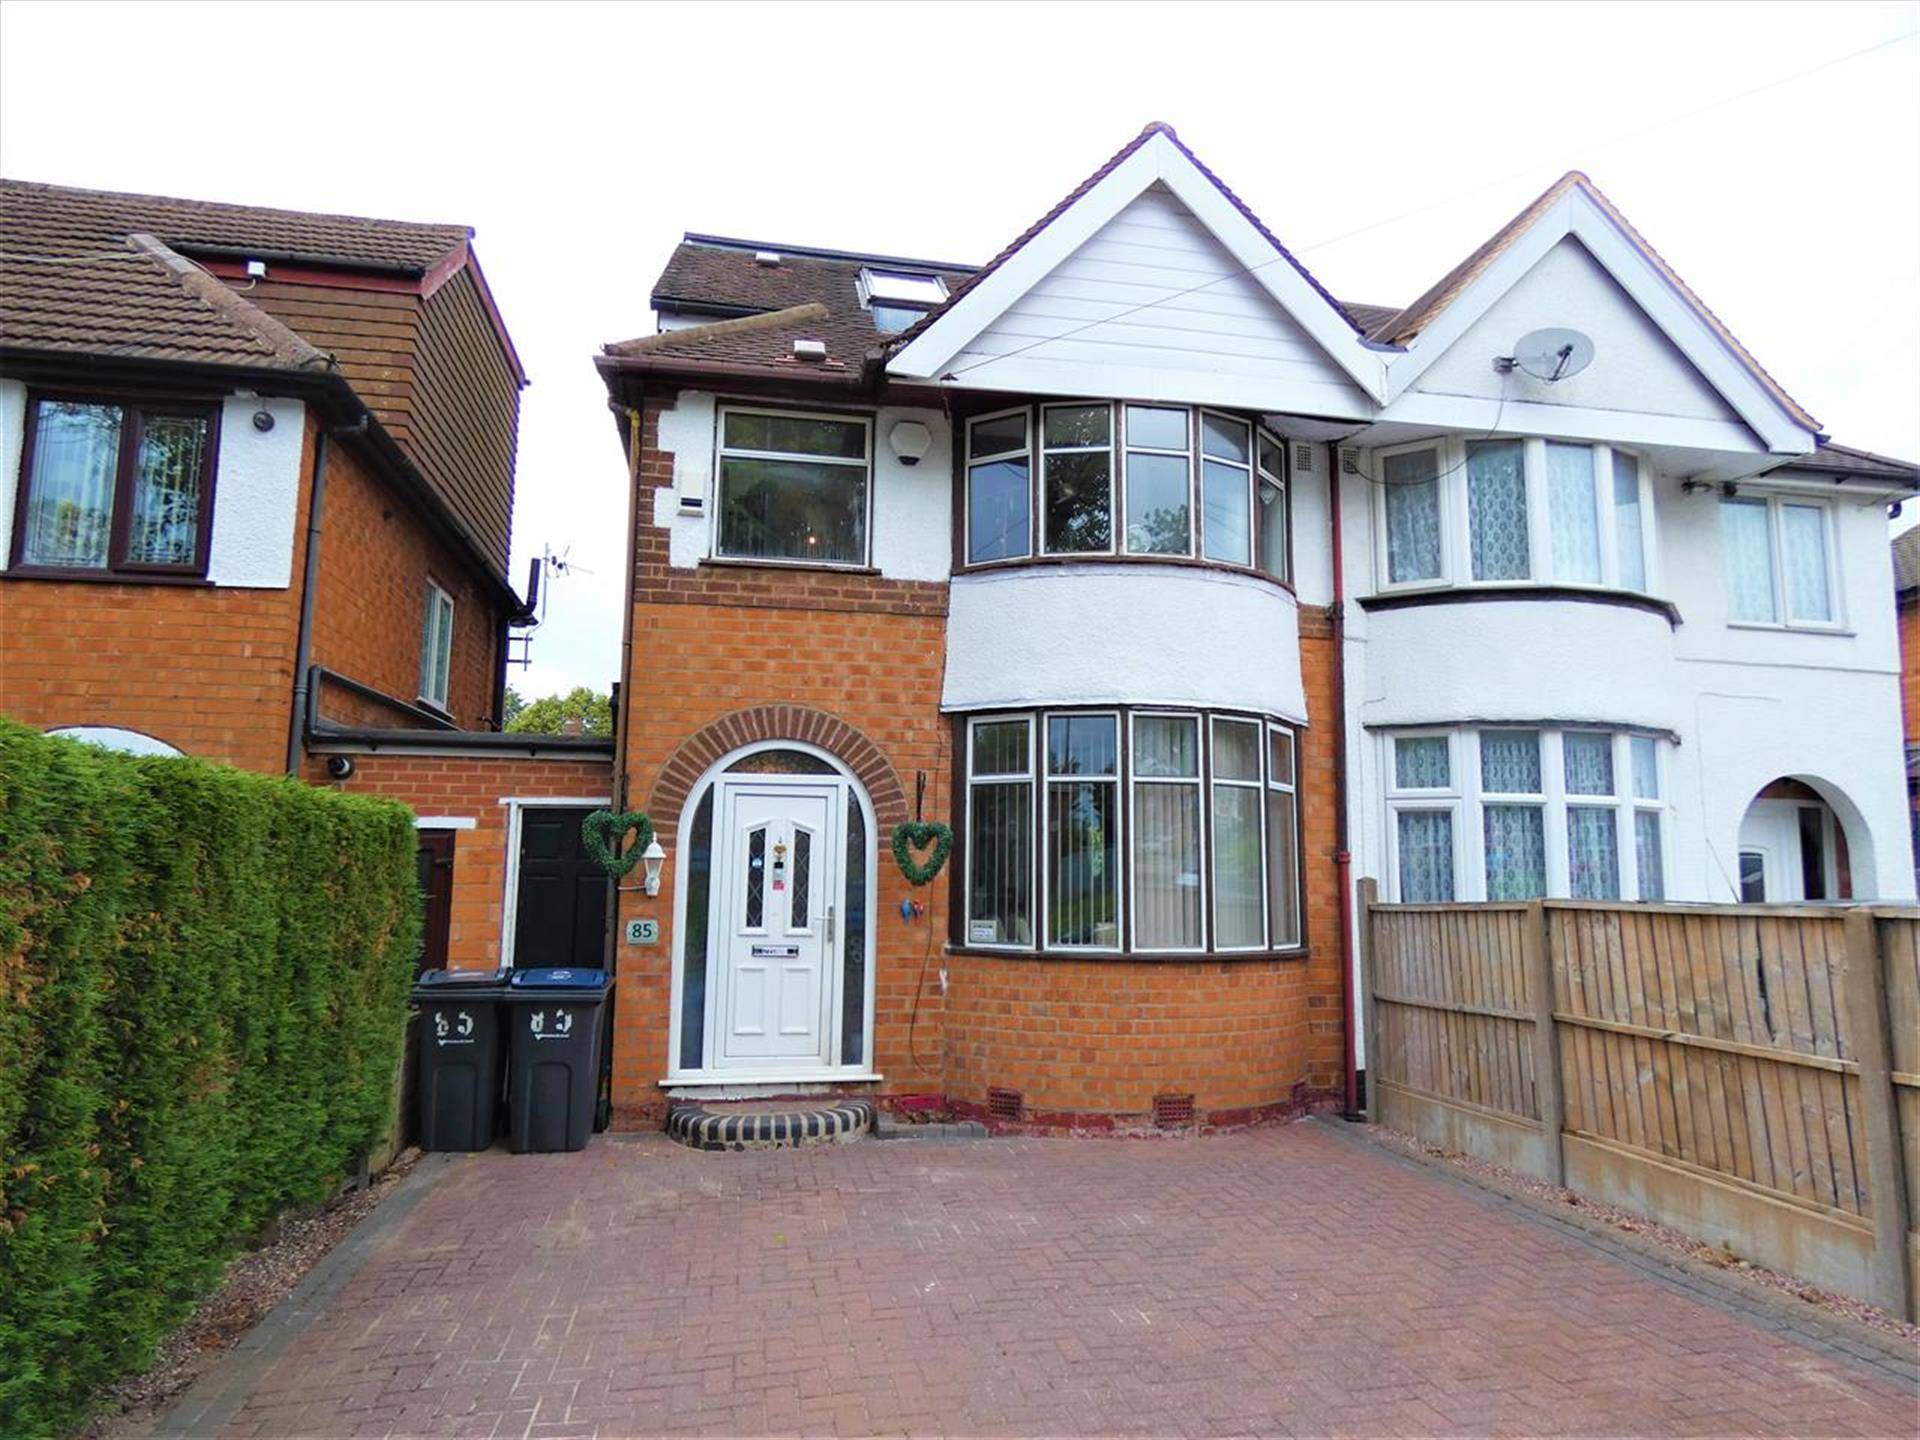 3 Bedroom Semi-detached House For Sale - Main Picture